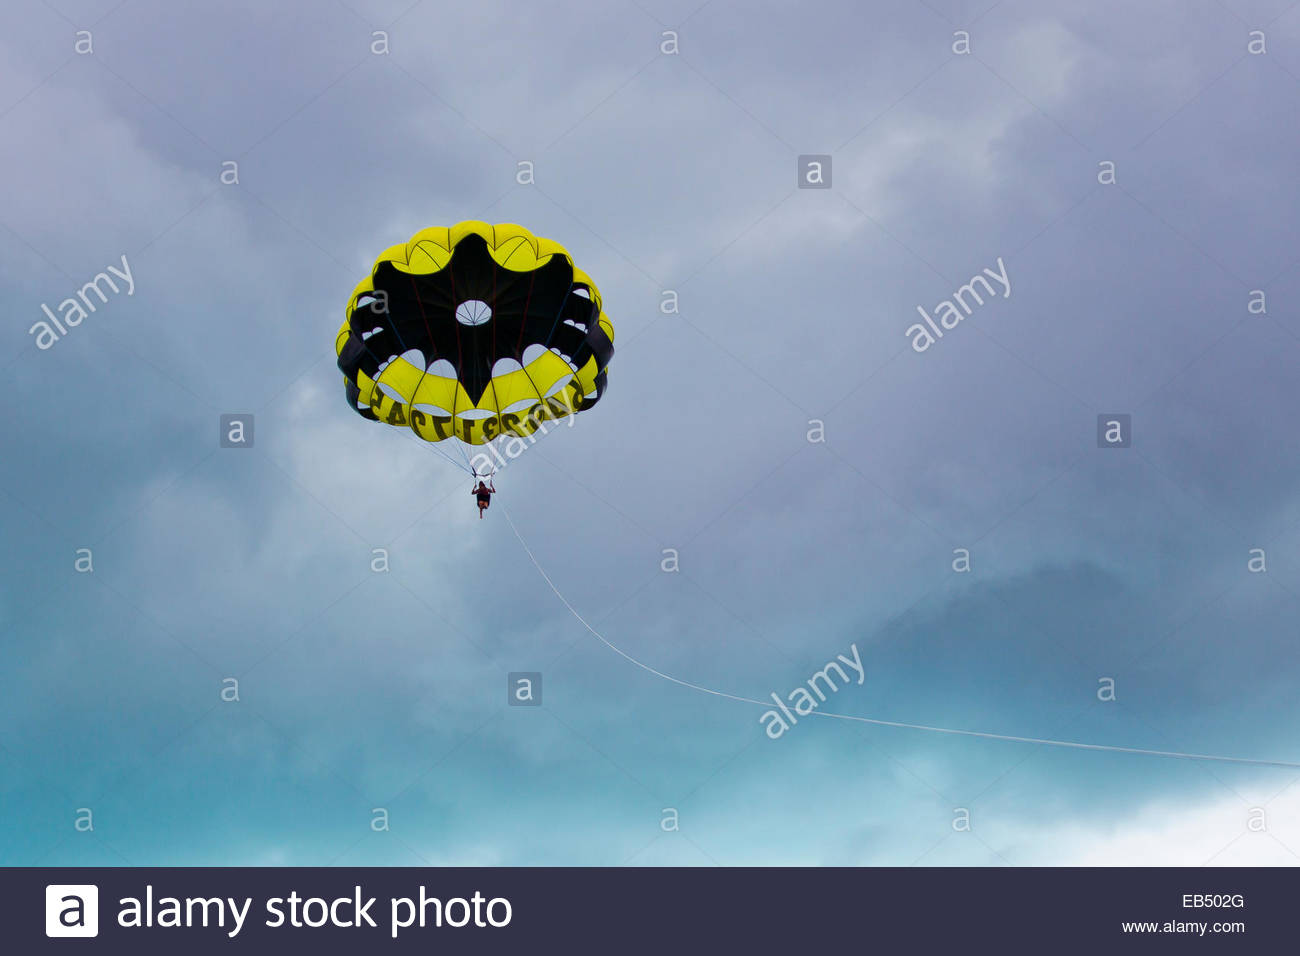 A woman parasailing over Grace Bay in a cloud-filled sky, using a Batman-themed parachute. Stock Photo